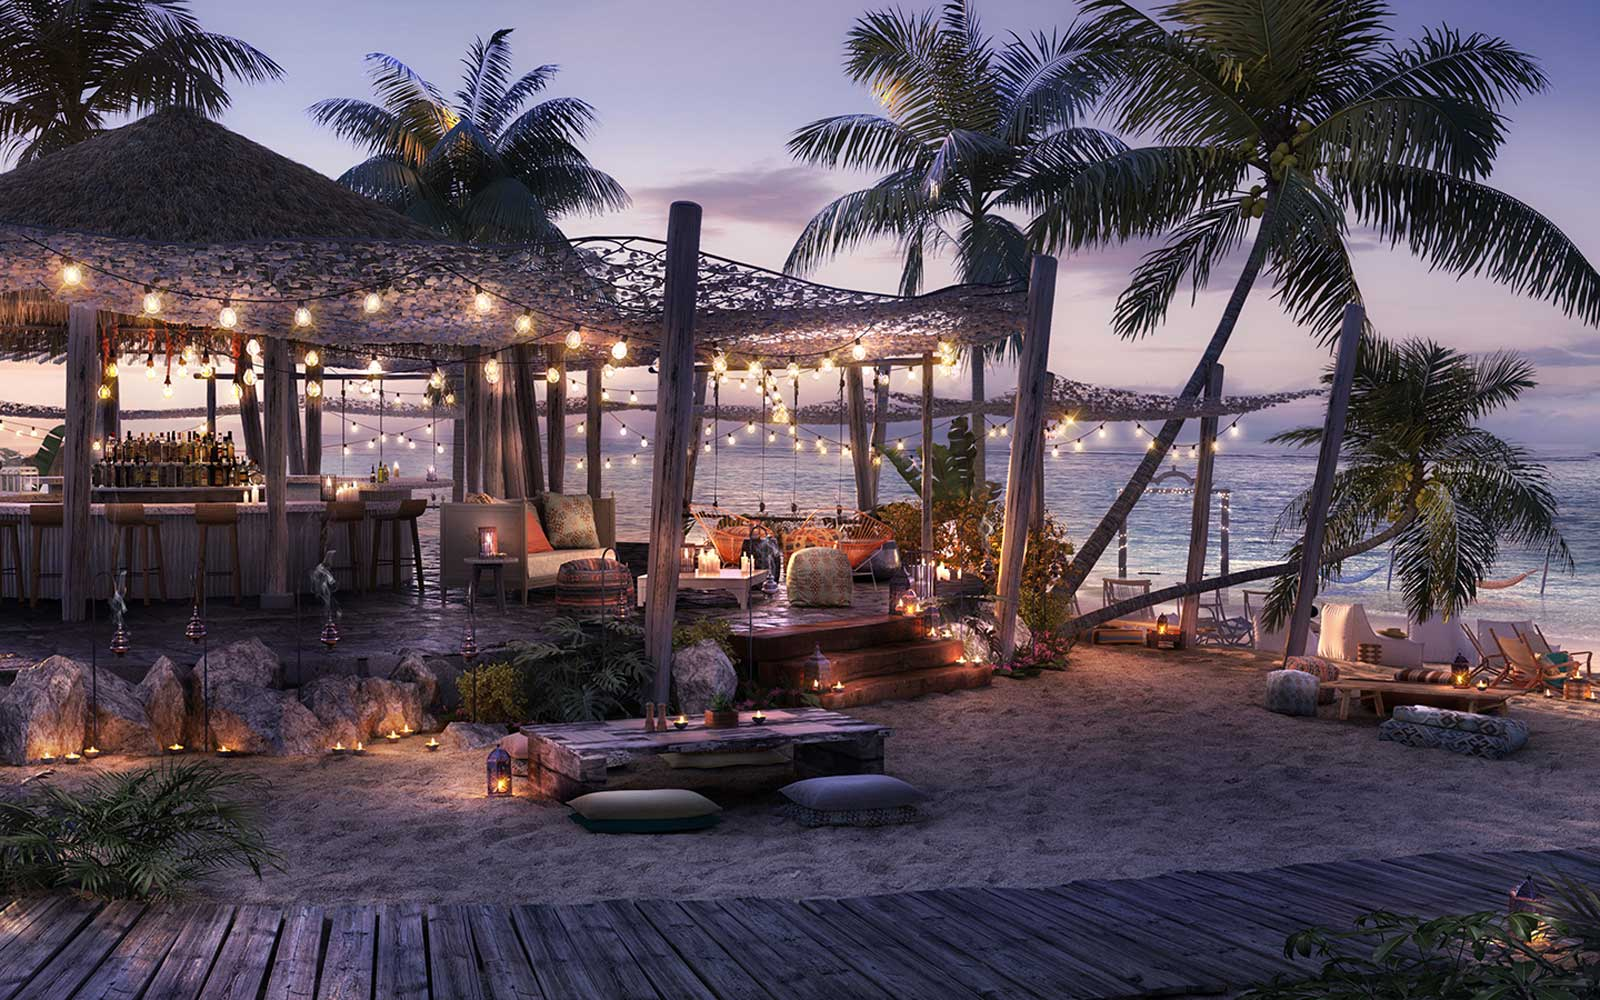 Virgin Voyages Wants to Build a Party Scene in the Bahamas to Rival Ibiza